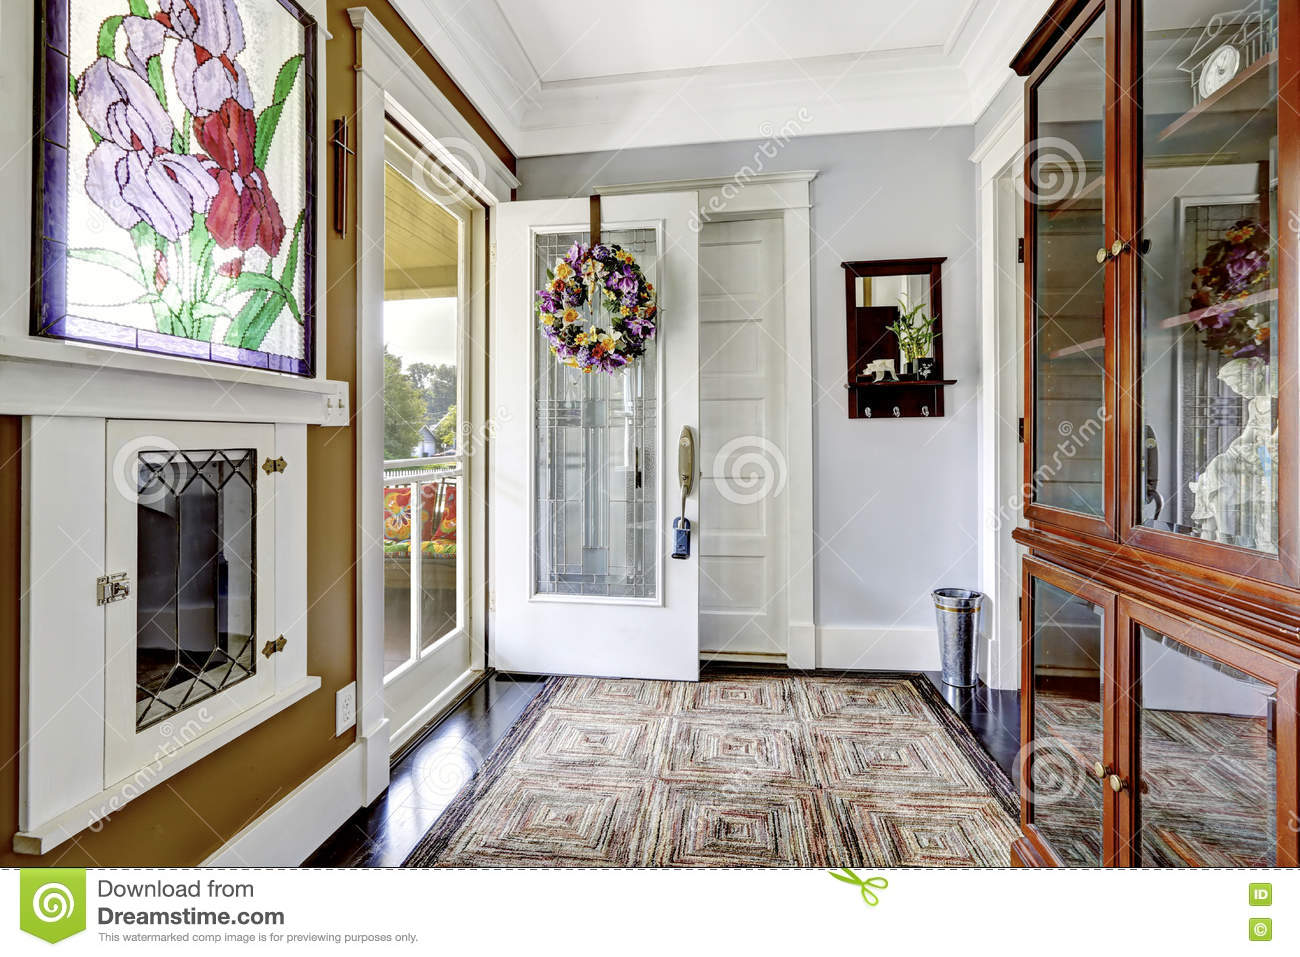 cozy entry room in small craftsman house. stock photo - image